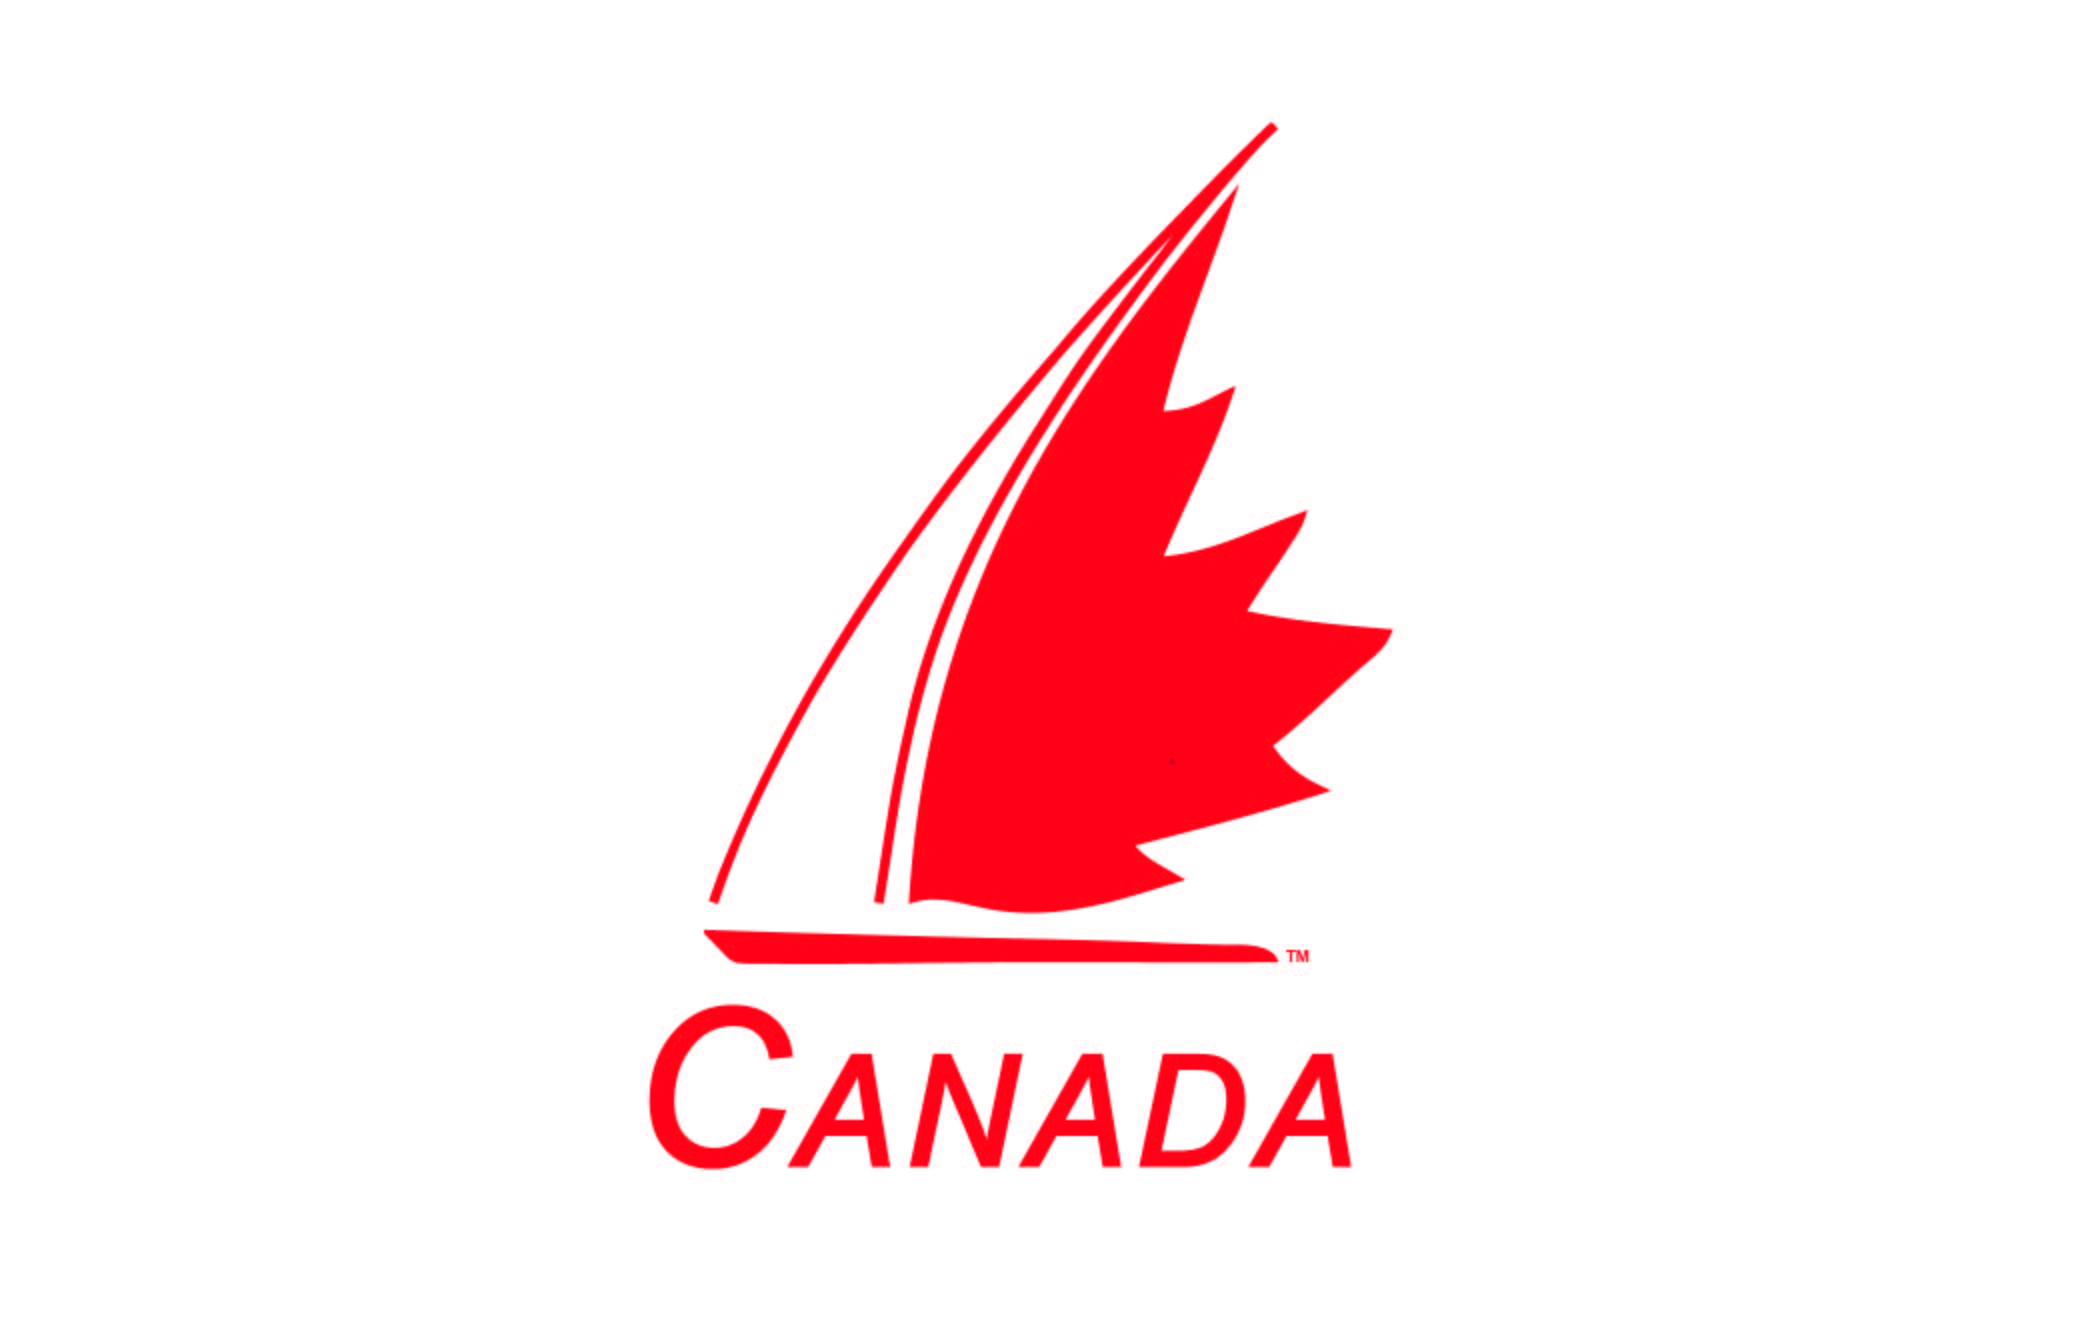 2_5ii_-_SAIL_CANADA_MARK_-_Small_Cap_-_Regular_Arial.jpg